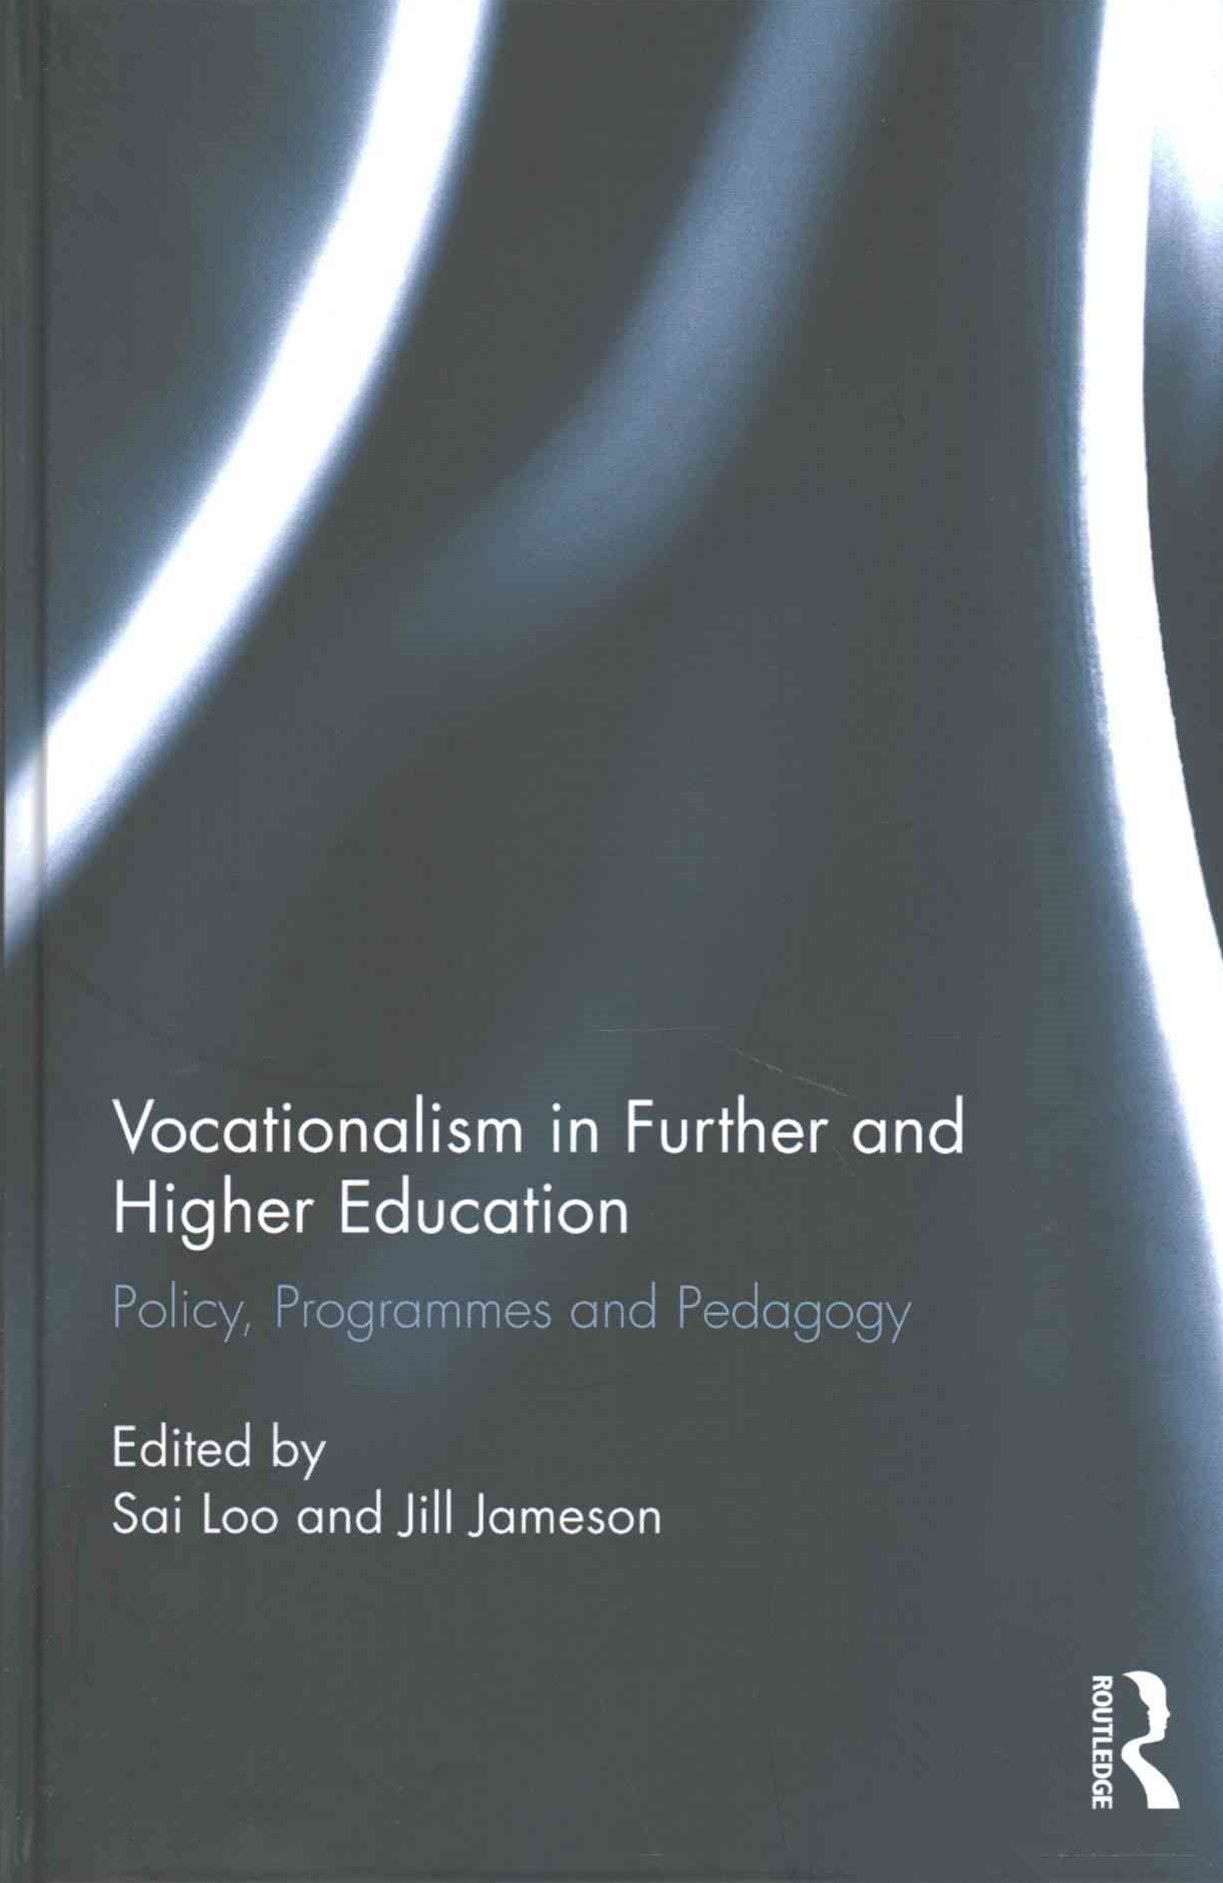 Vocationalism in Further and Higher Education